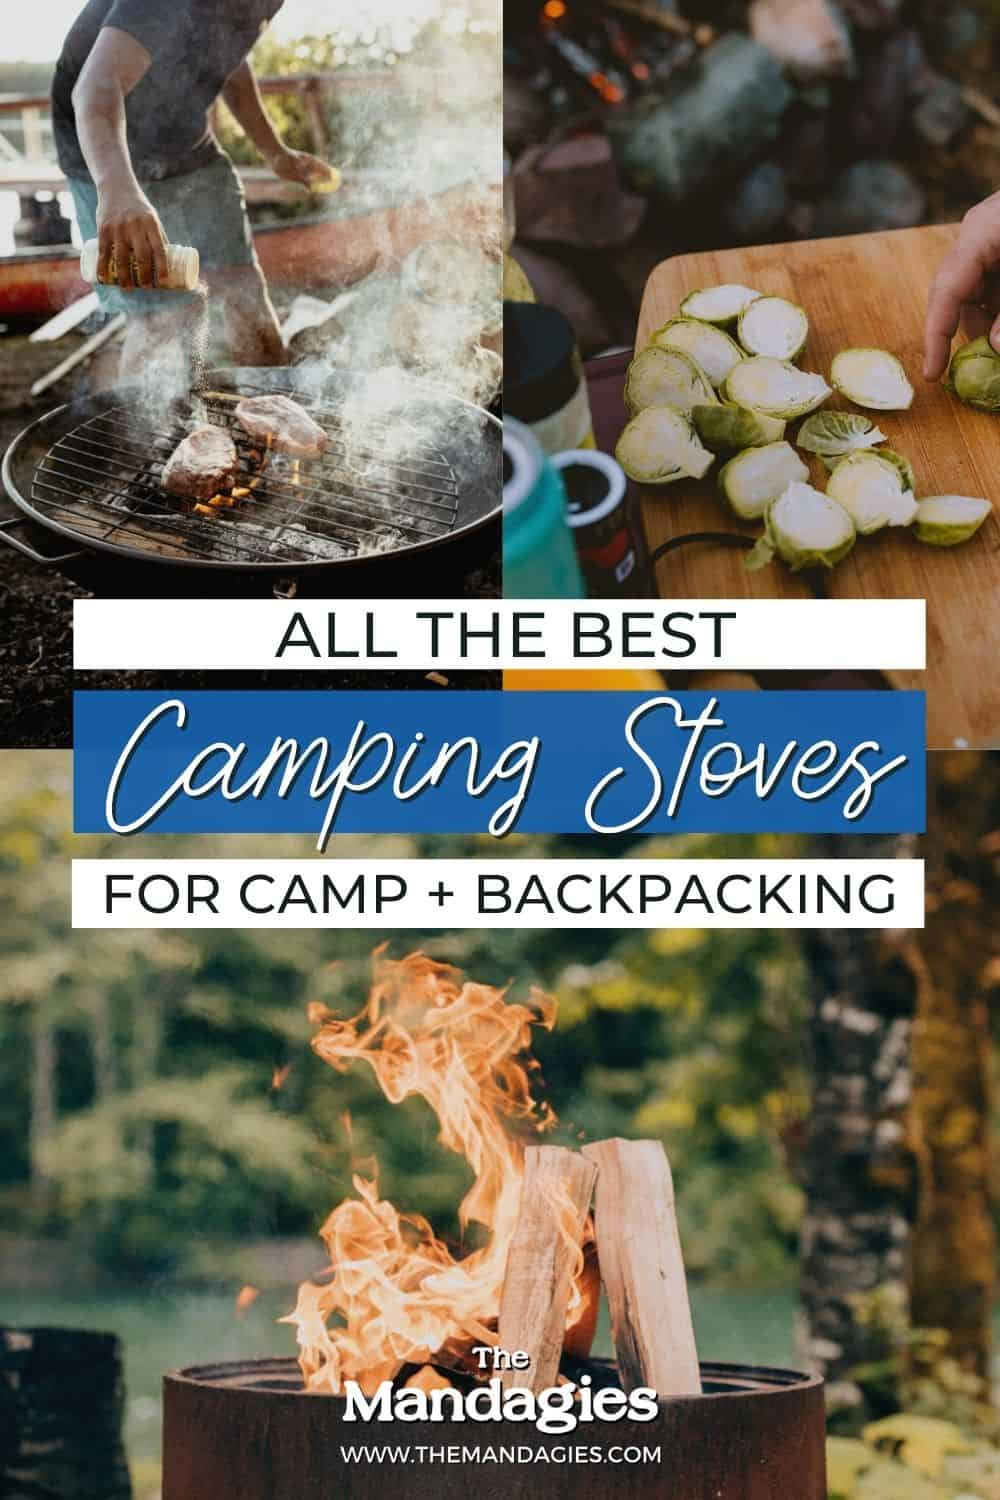 All the Best Camping Stoves For Car Camping and Backpacking #camping #campingreviews #stoves #cooking